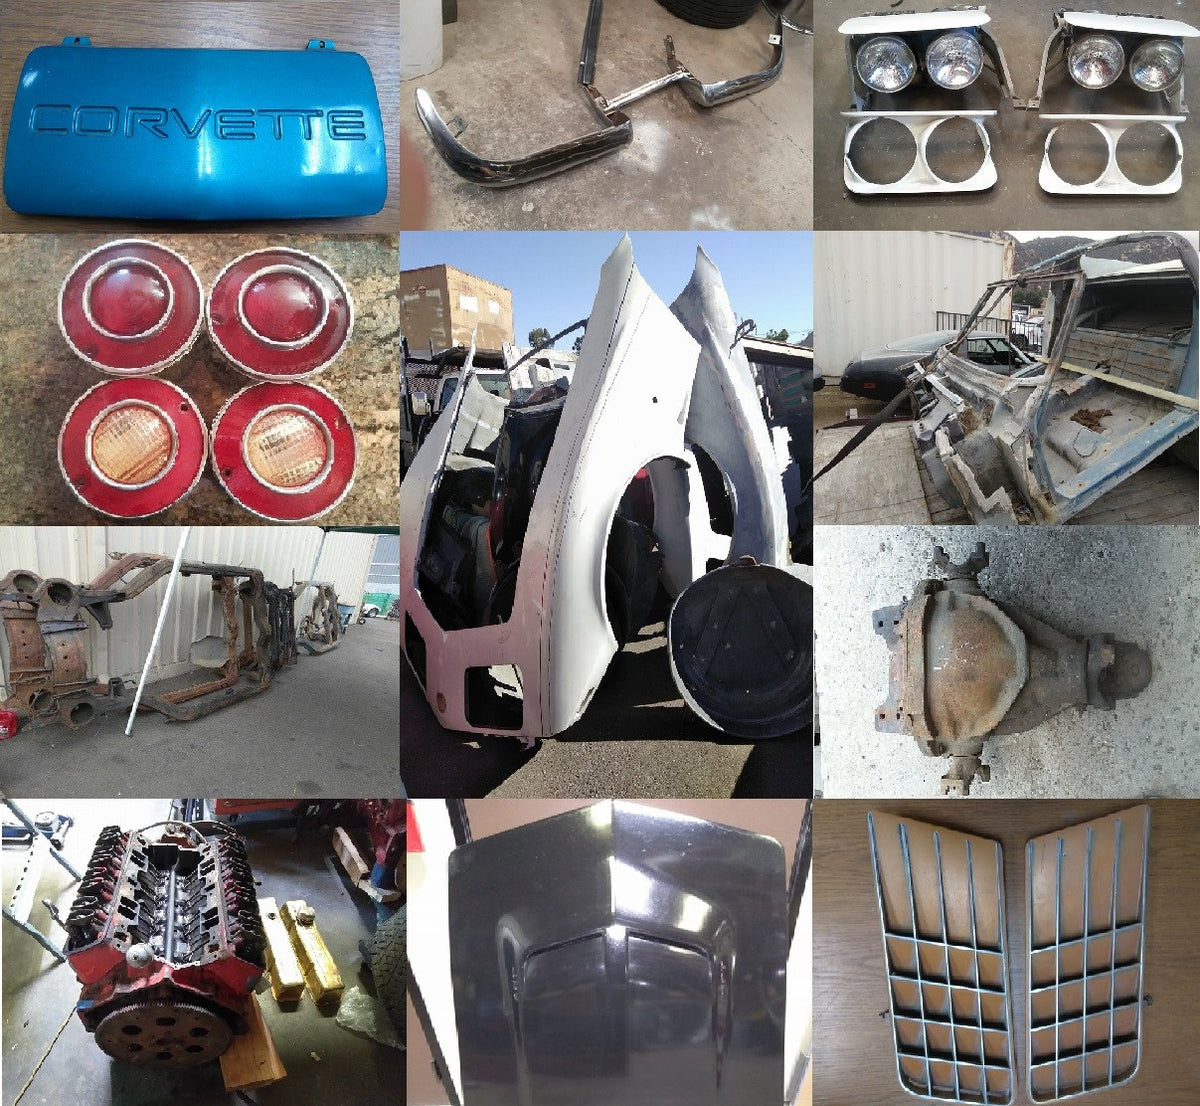 corvette parts, C3, C4, Classic Corvettes, corvette, classic muscle cars, 1968-1982 Corvette parts,